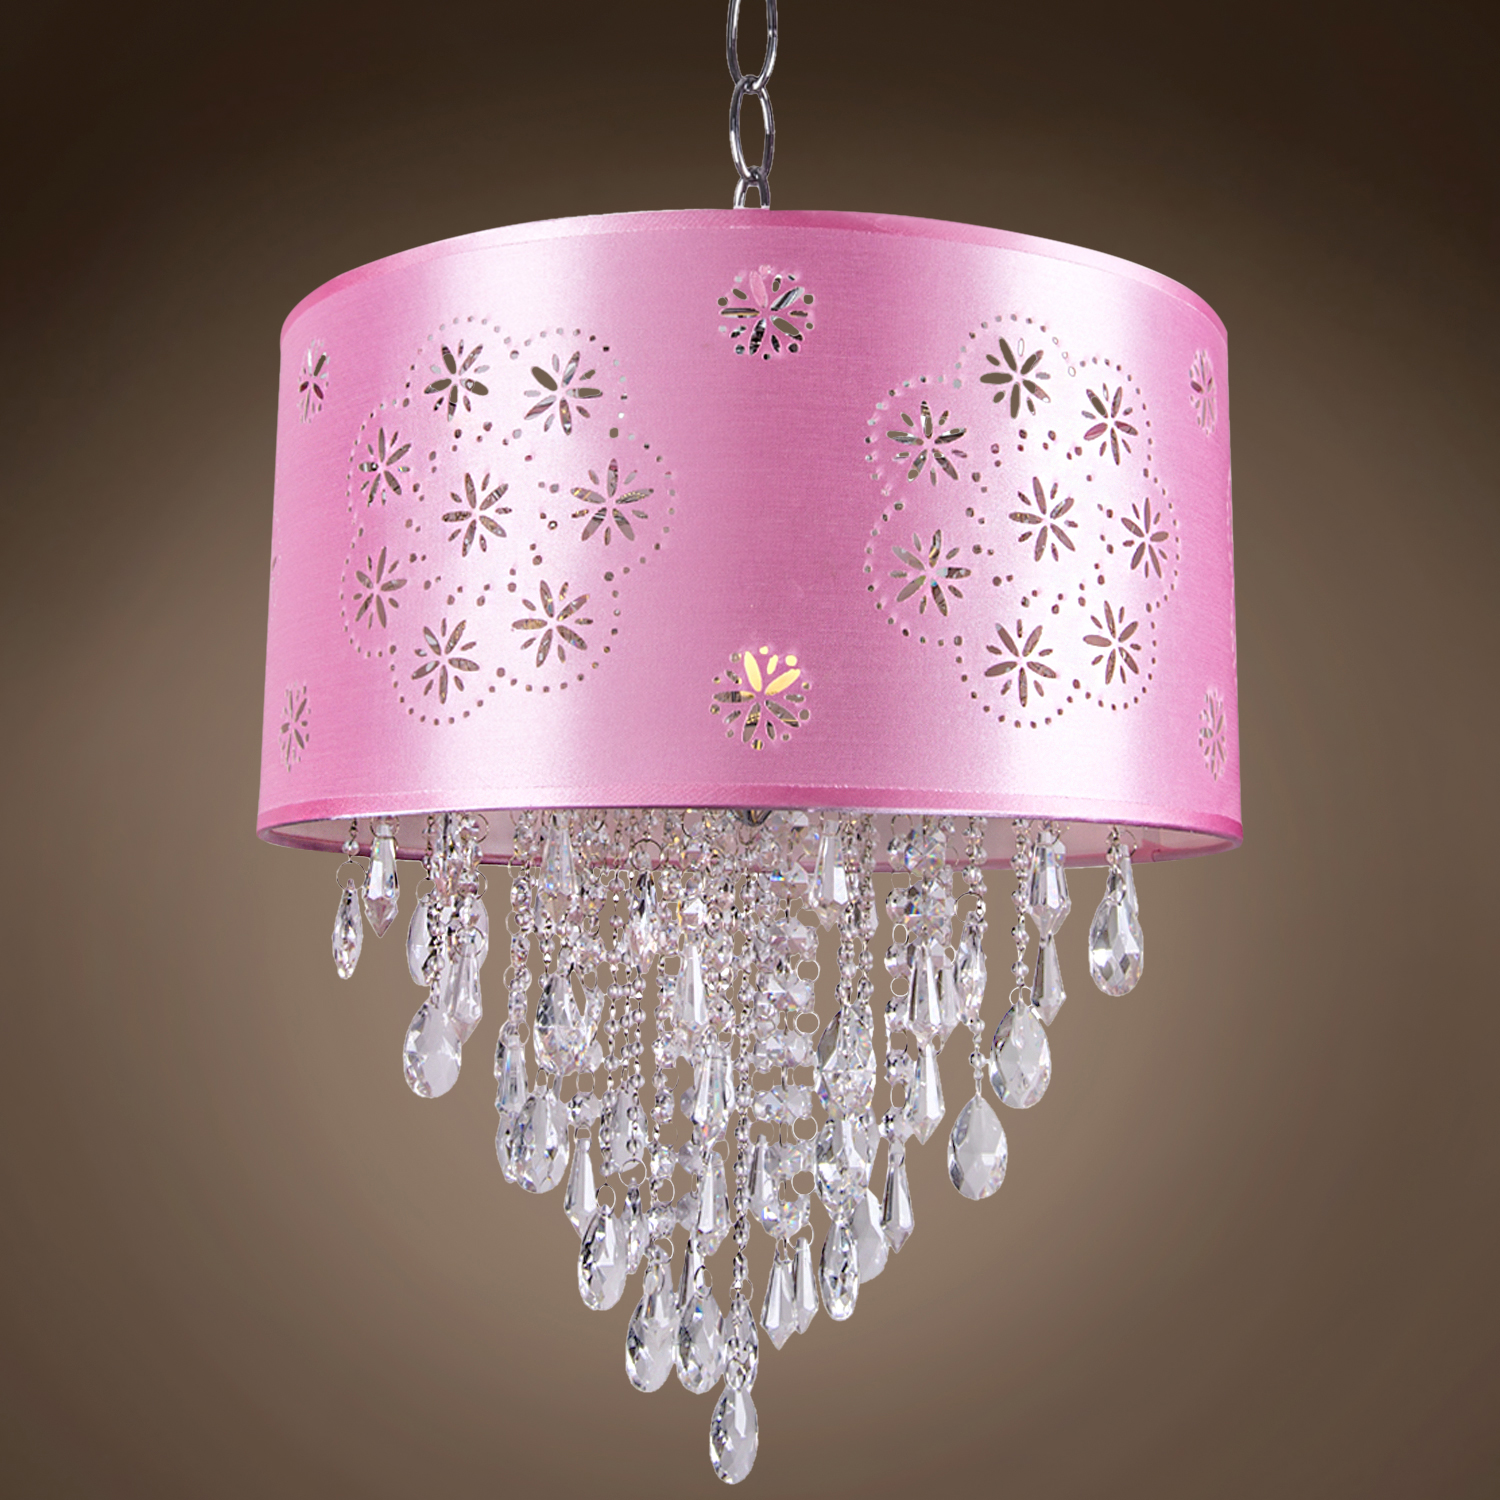 14 In Single Shade White And Silver Hanging Lamp Global: Joshua Marshal 1 Light Pink Drum Shade Pendant In Chrome